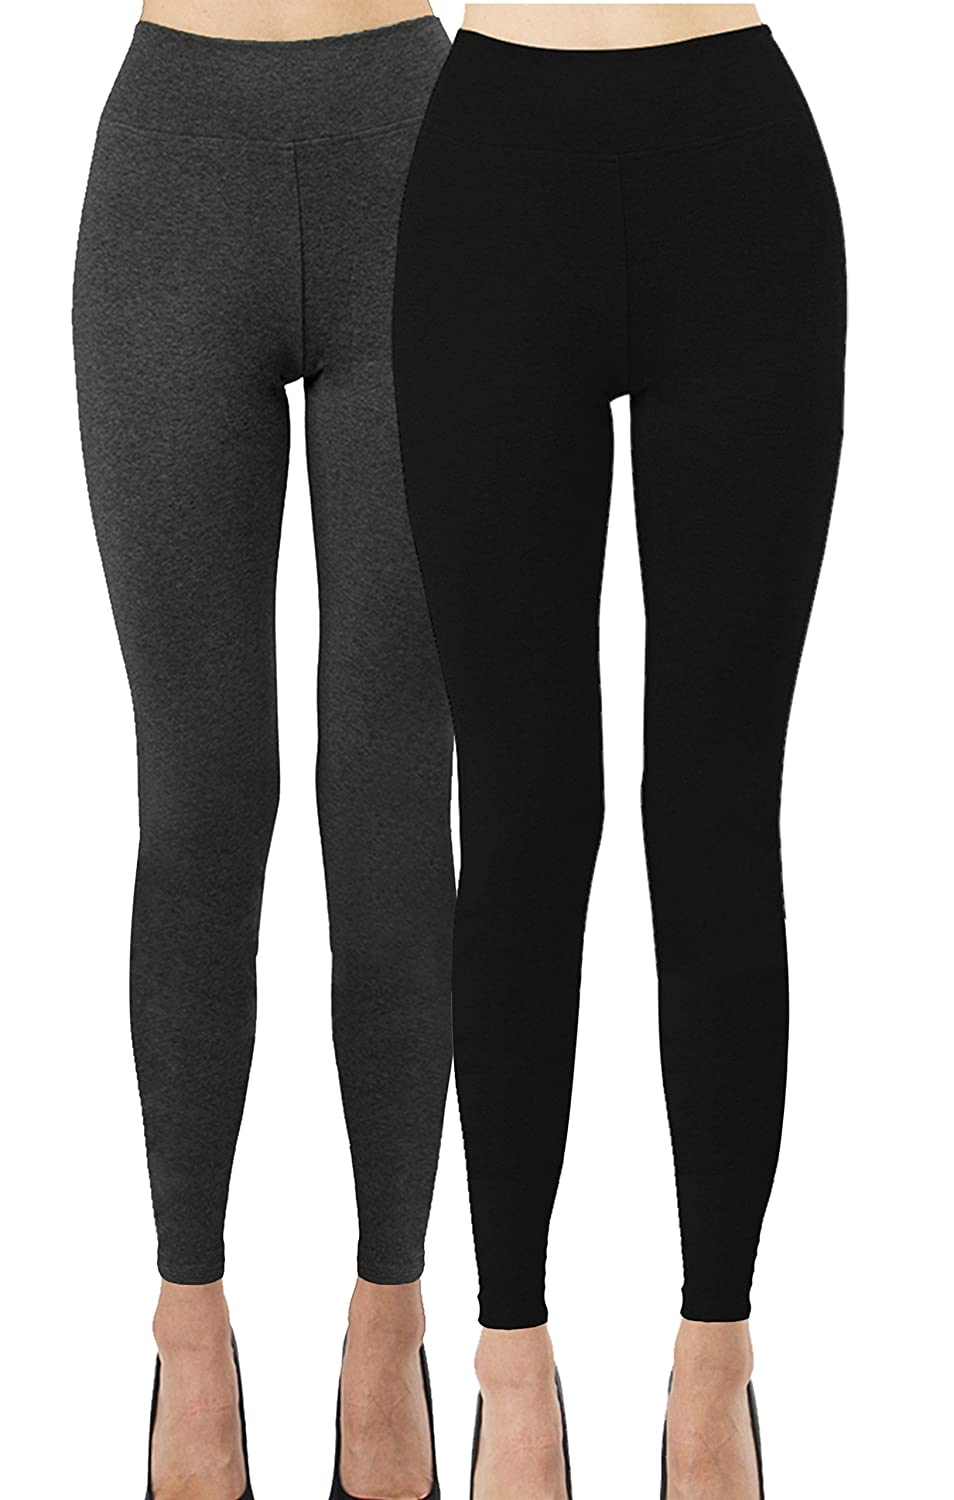 2d12f64518dc3e iLoveSIA Women's Yoga Pants Cotton Leggings Pack of 2 at Amazon Women's  Clothing store: